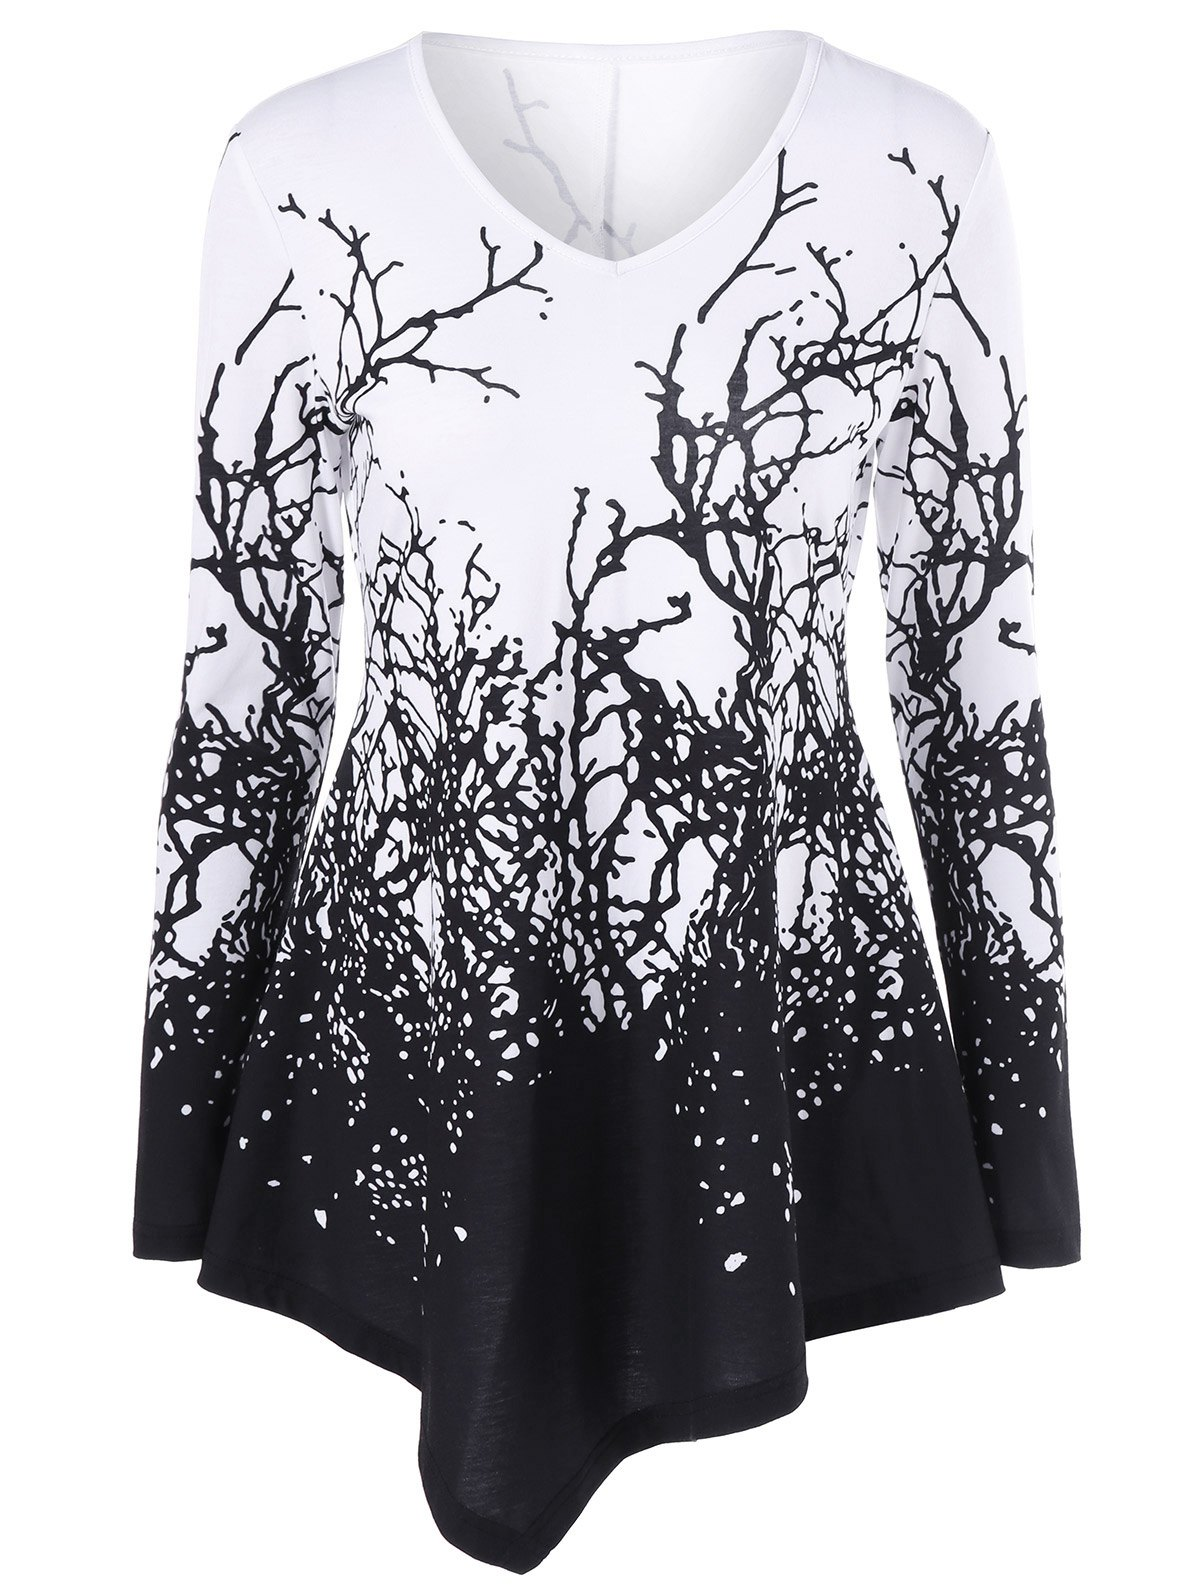 Branch Print Asymmetrical T-Shirt - WHITE/BLACK L